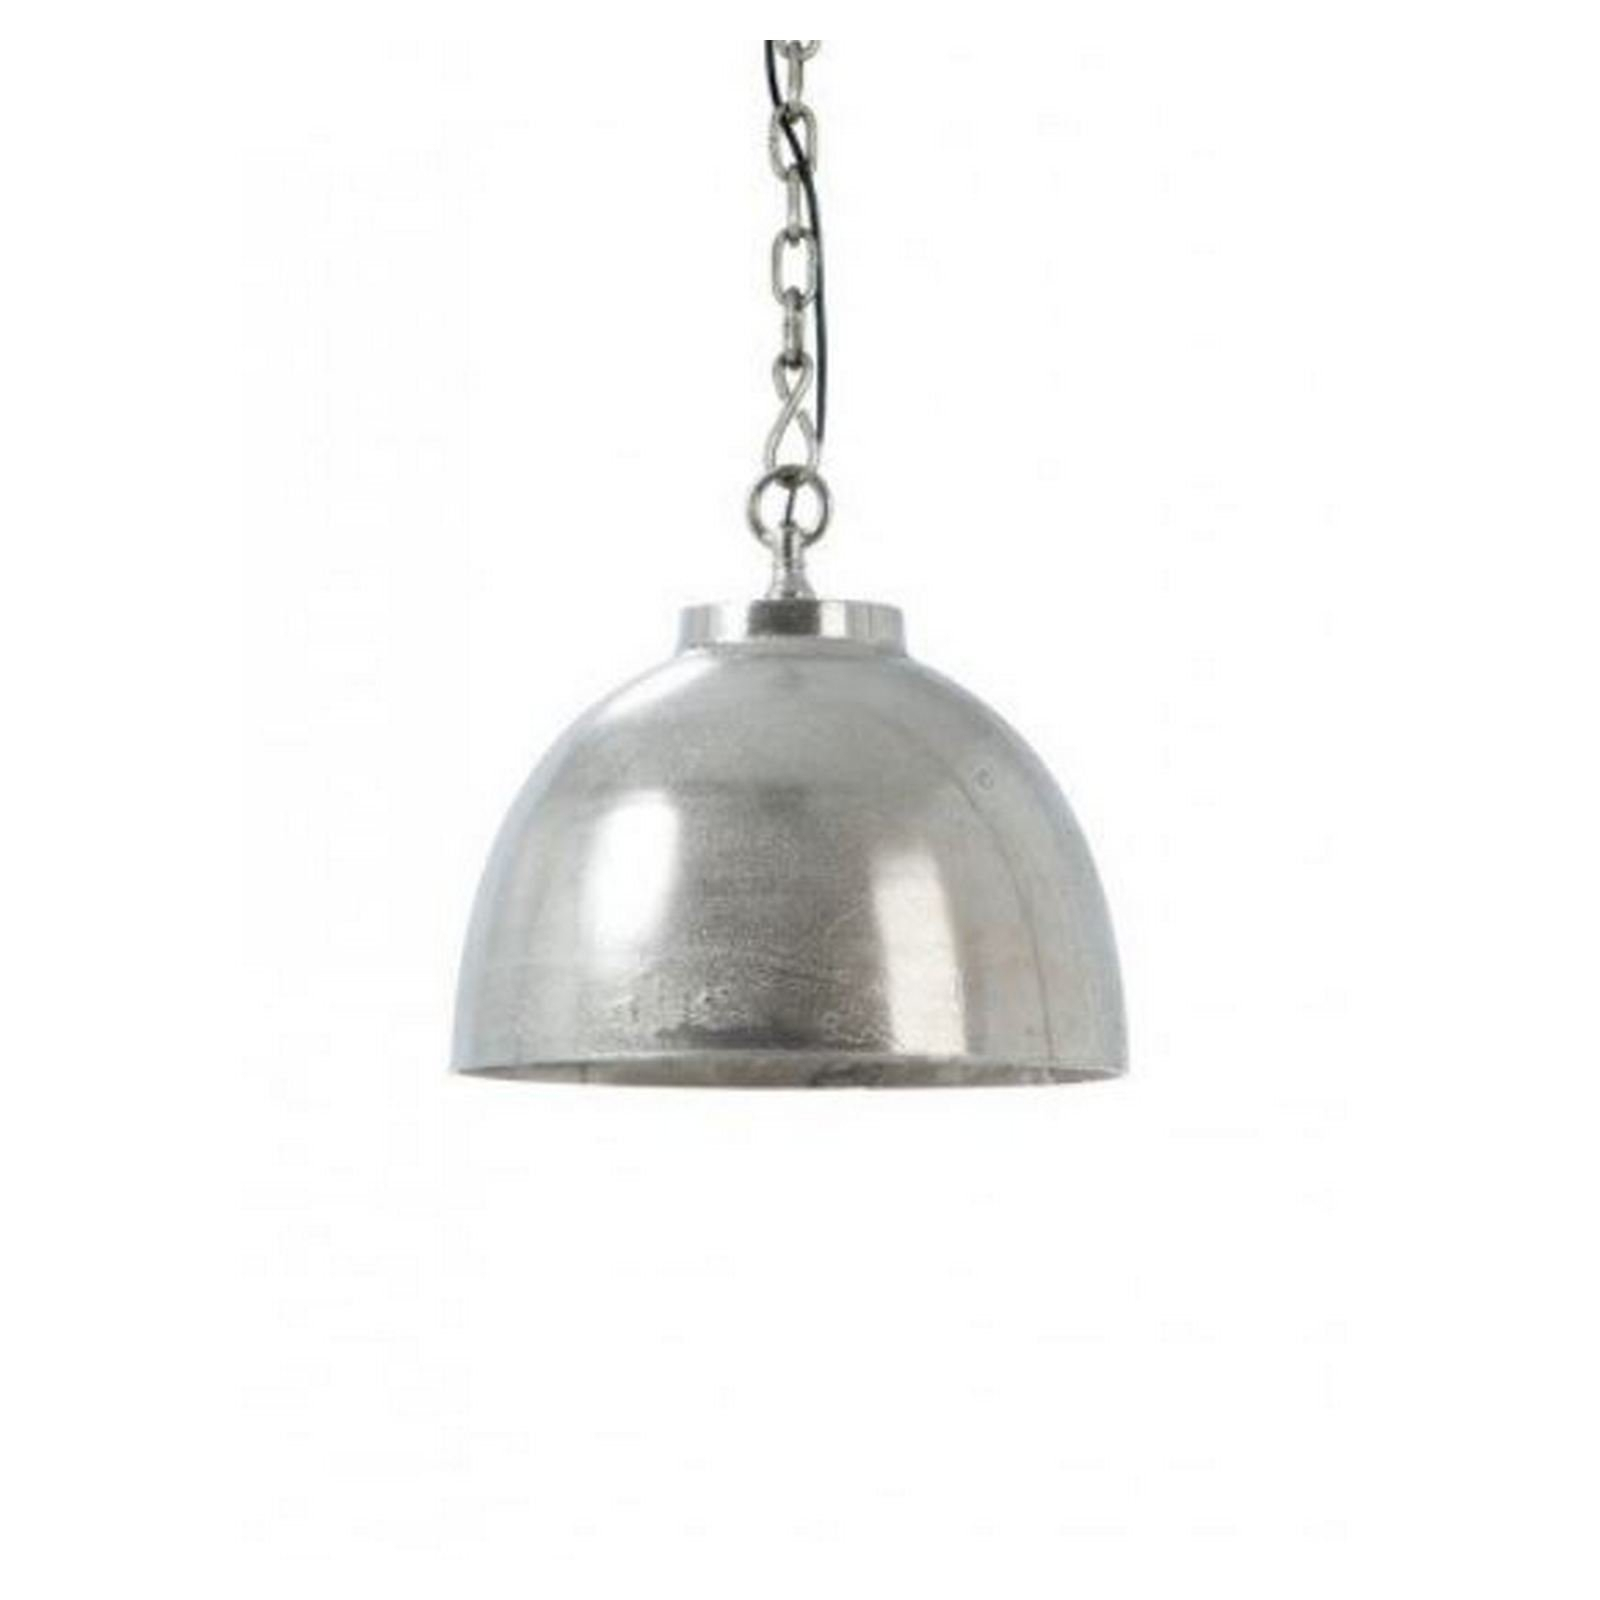 Pericles 1 Light Dome Pendant With Monadnock 1 Light Single Dome Pendants (View 25 of 30)